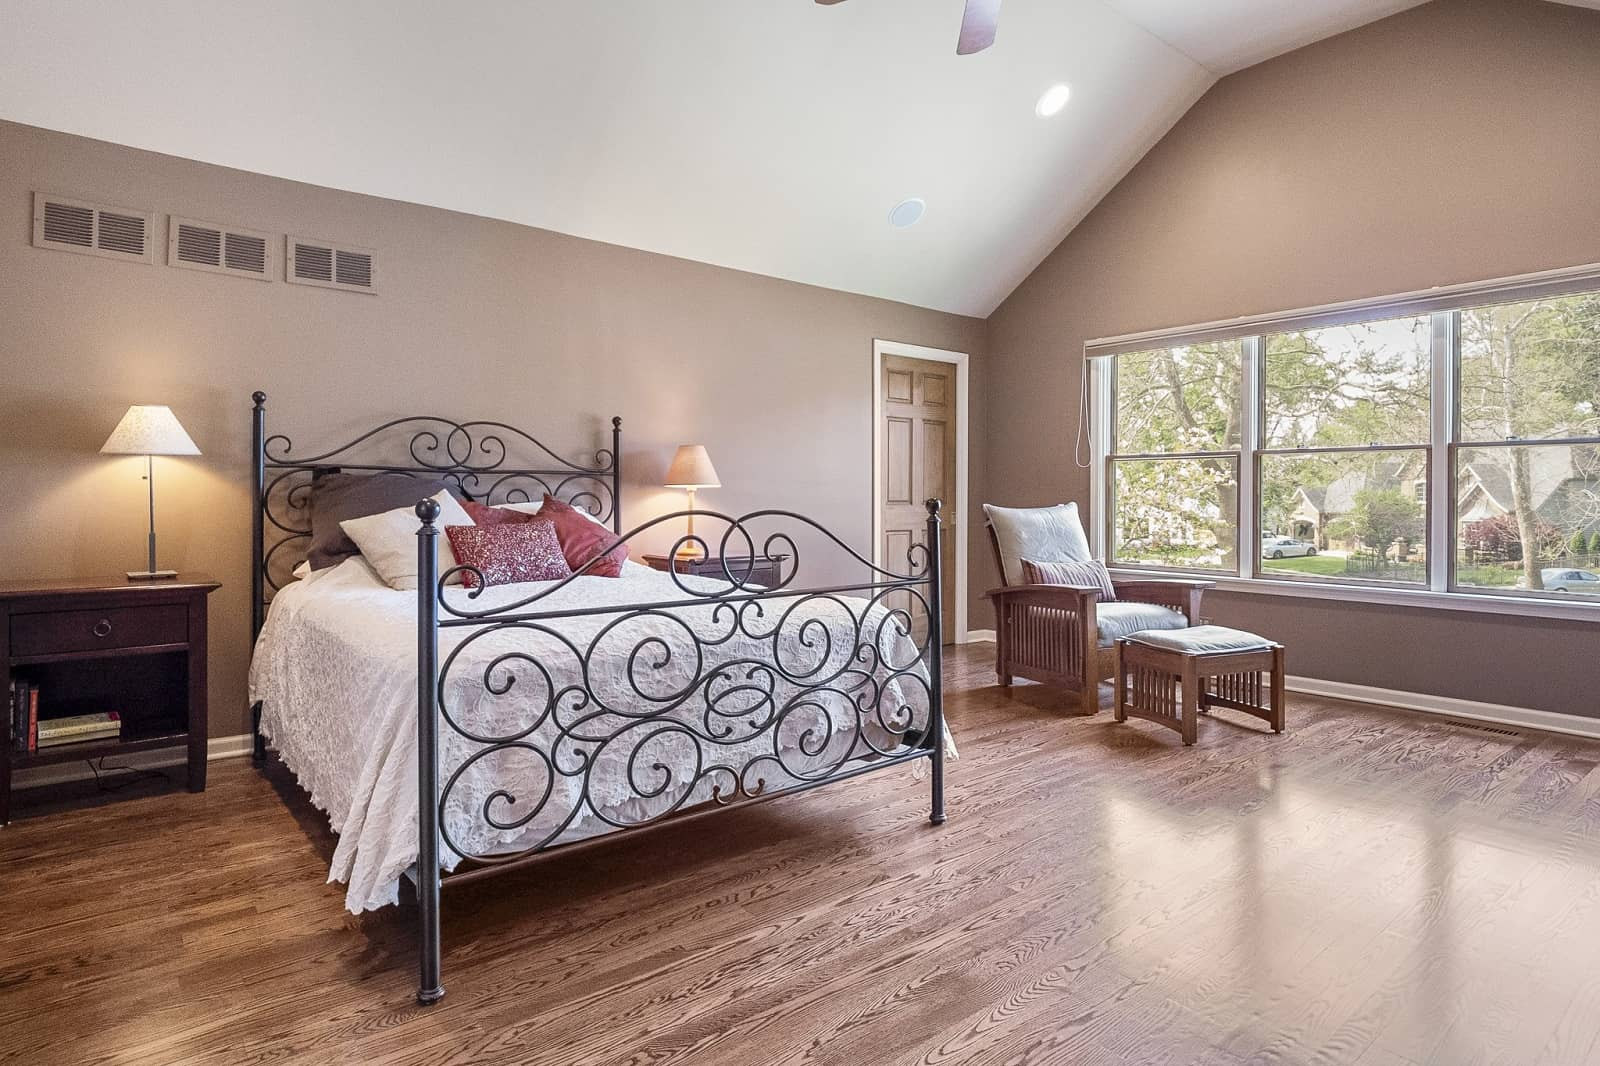 Real Estate Photography in Naperville - IL - USA - Bedroom View